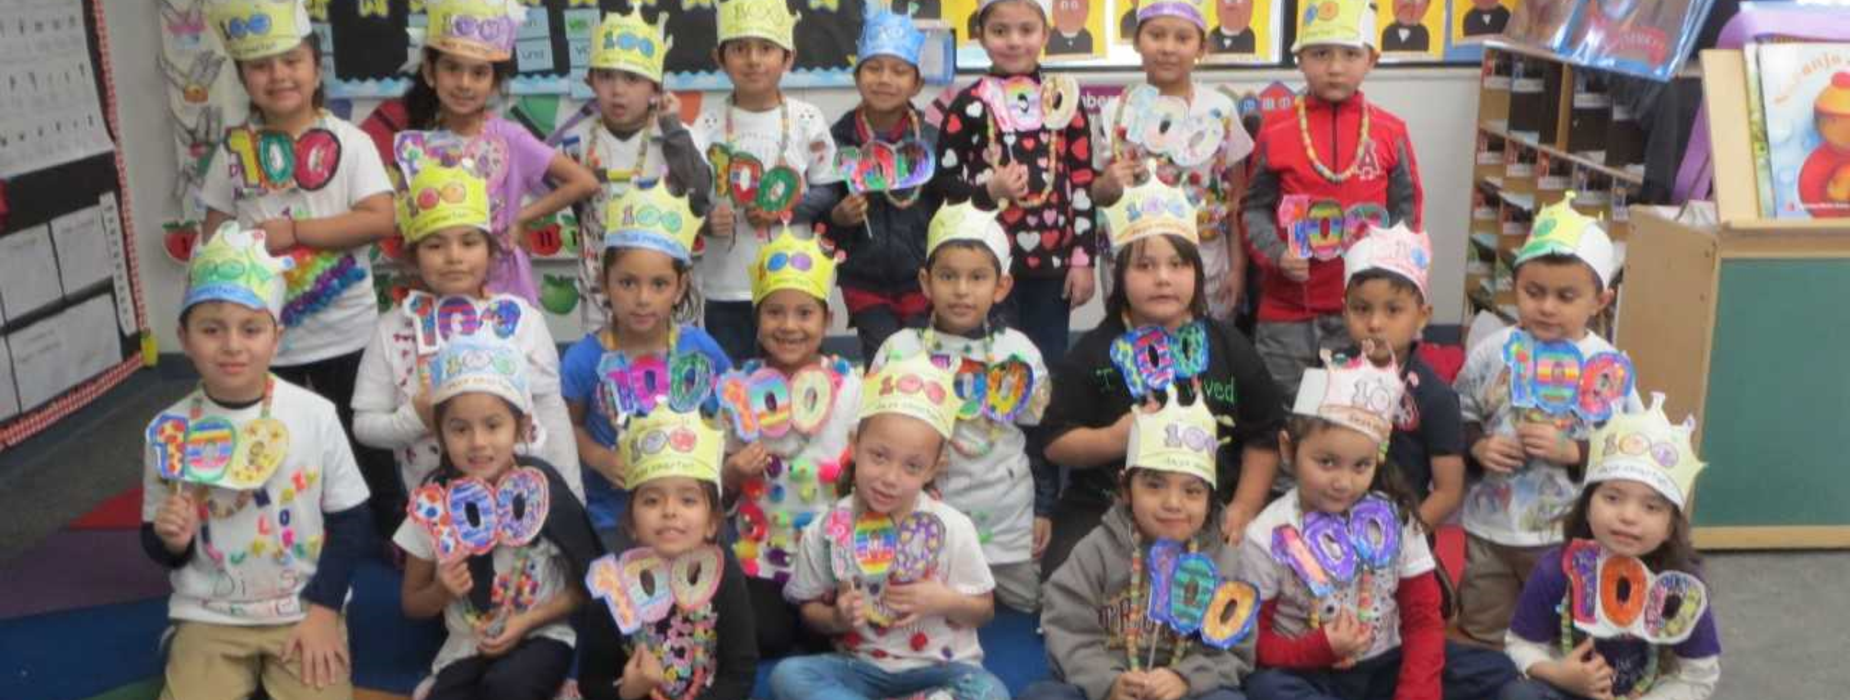 Kindergarten 100 days of school celebration